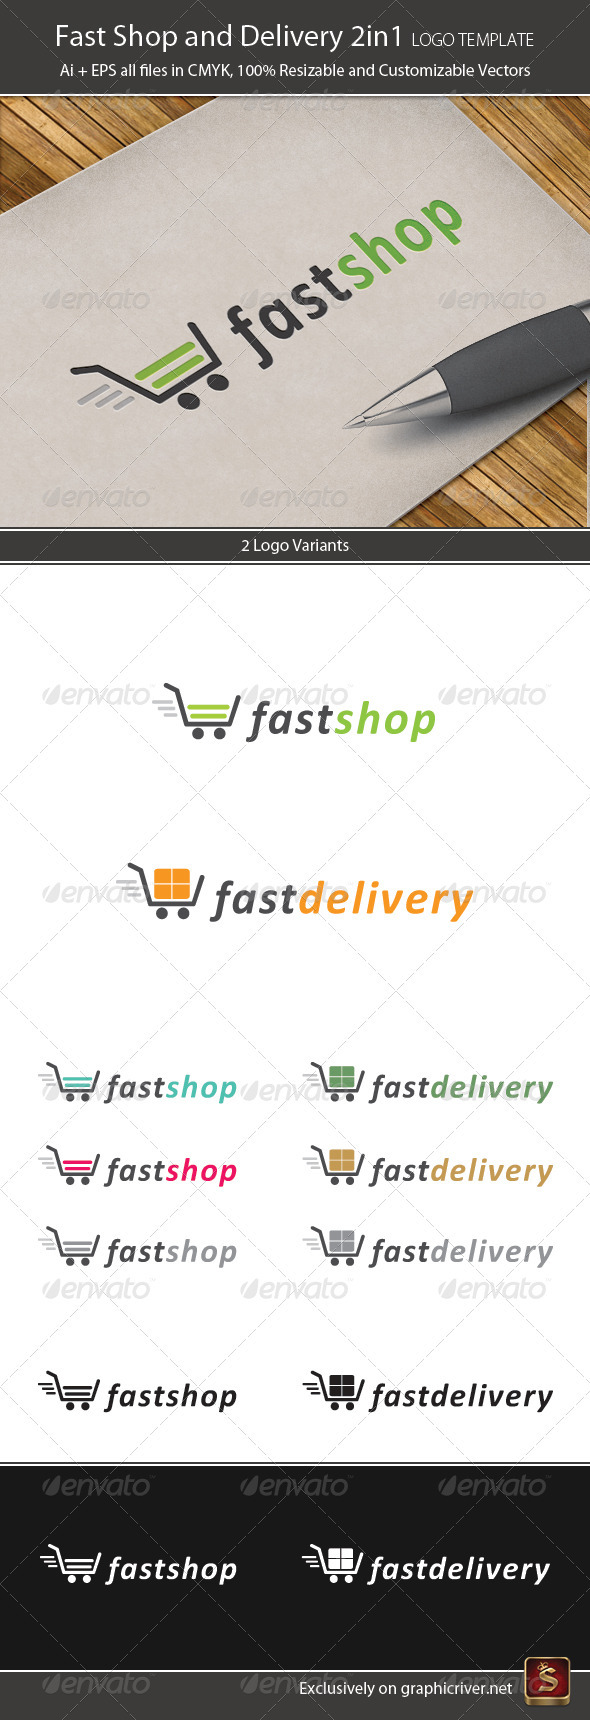 GraphicRiver Fast Shop And Delivery 2in1 Logo Template 2361194